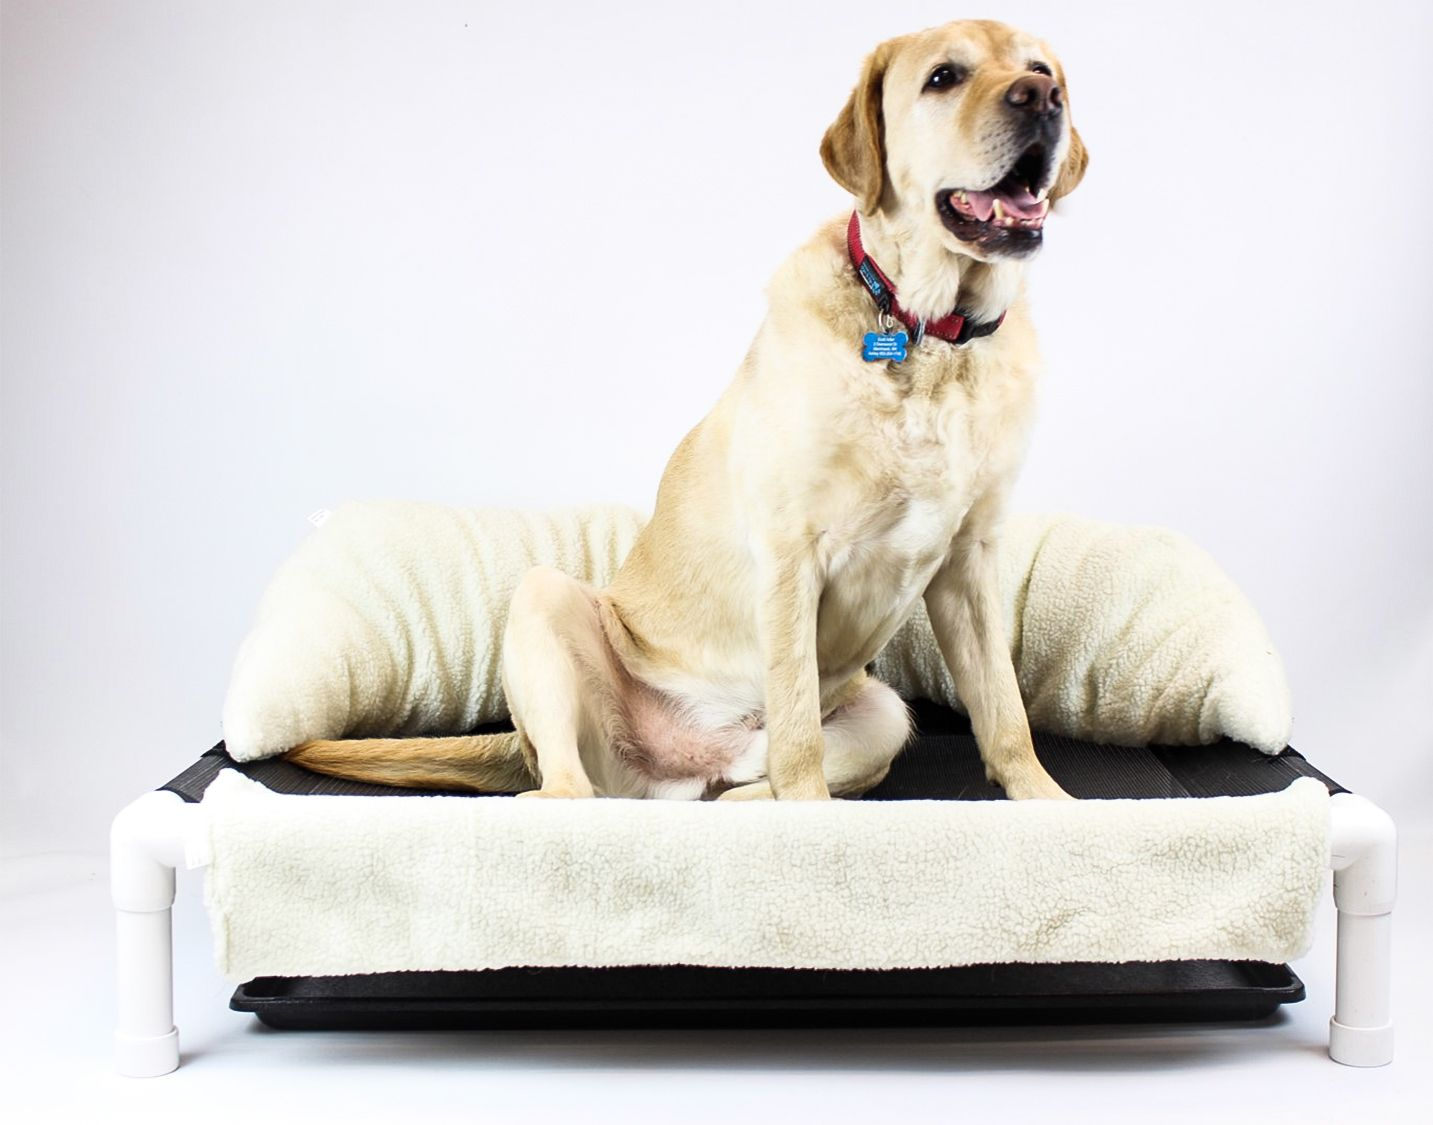 Dog incontinence sleepee time bed mesh dog bed dog